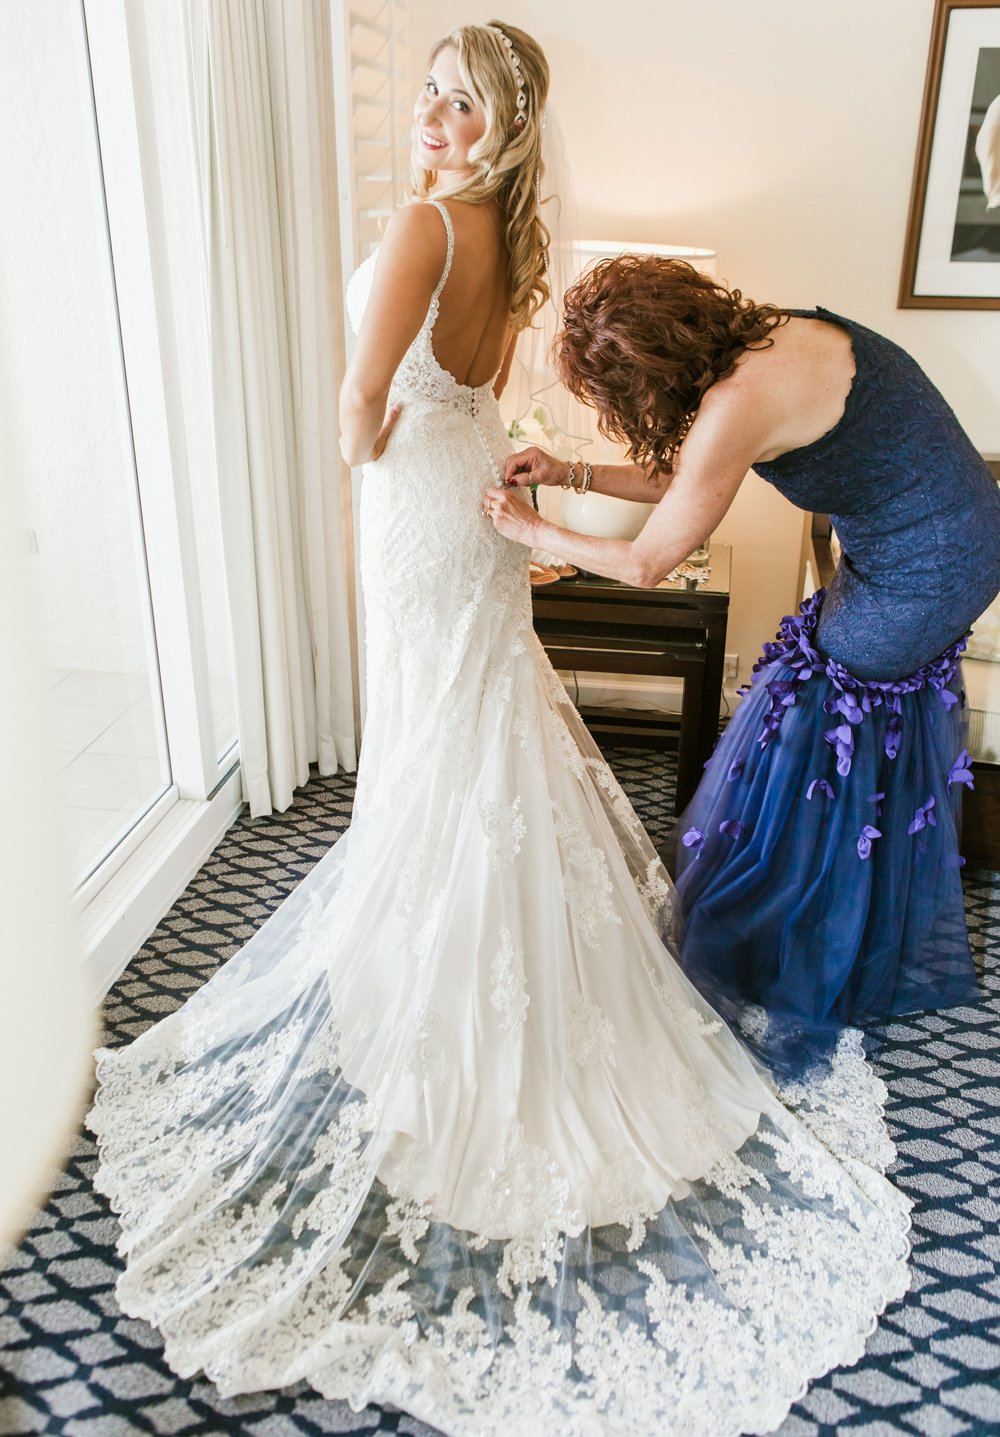 Longboat Key Club Beach Wedding - Mother helping bride into lace gown